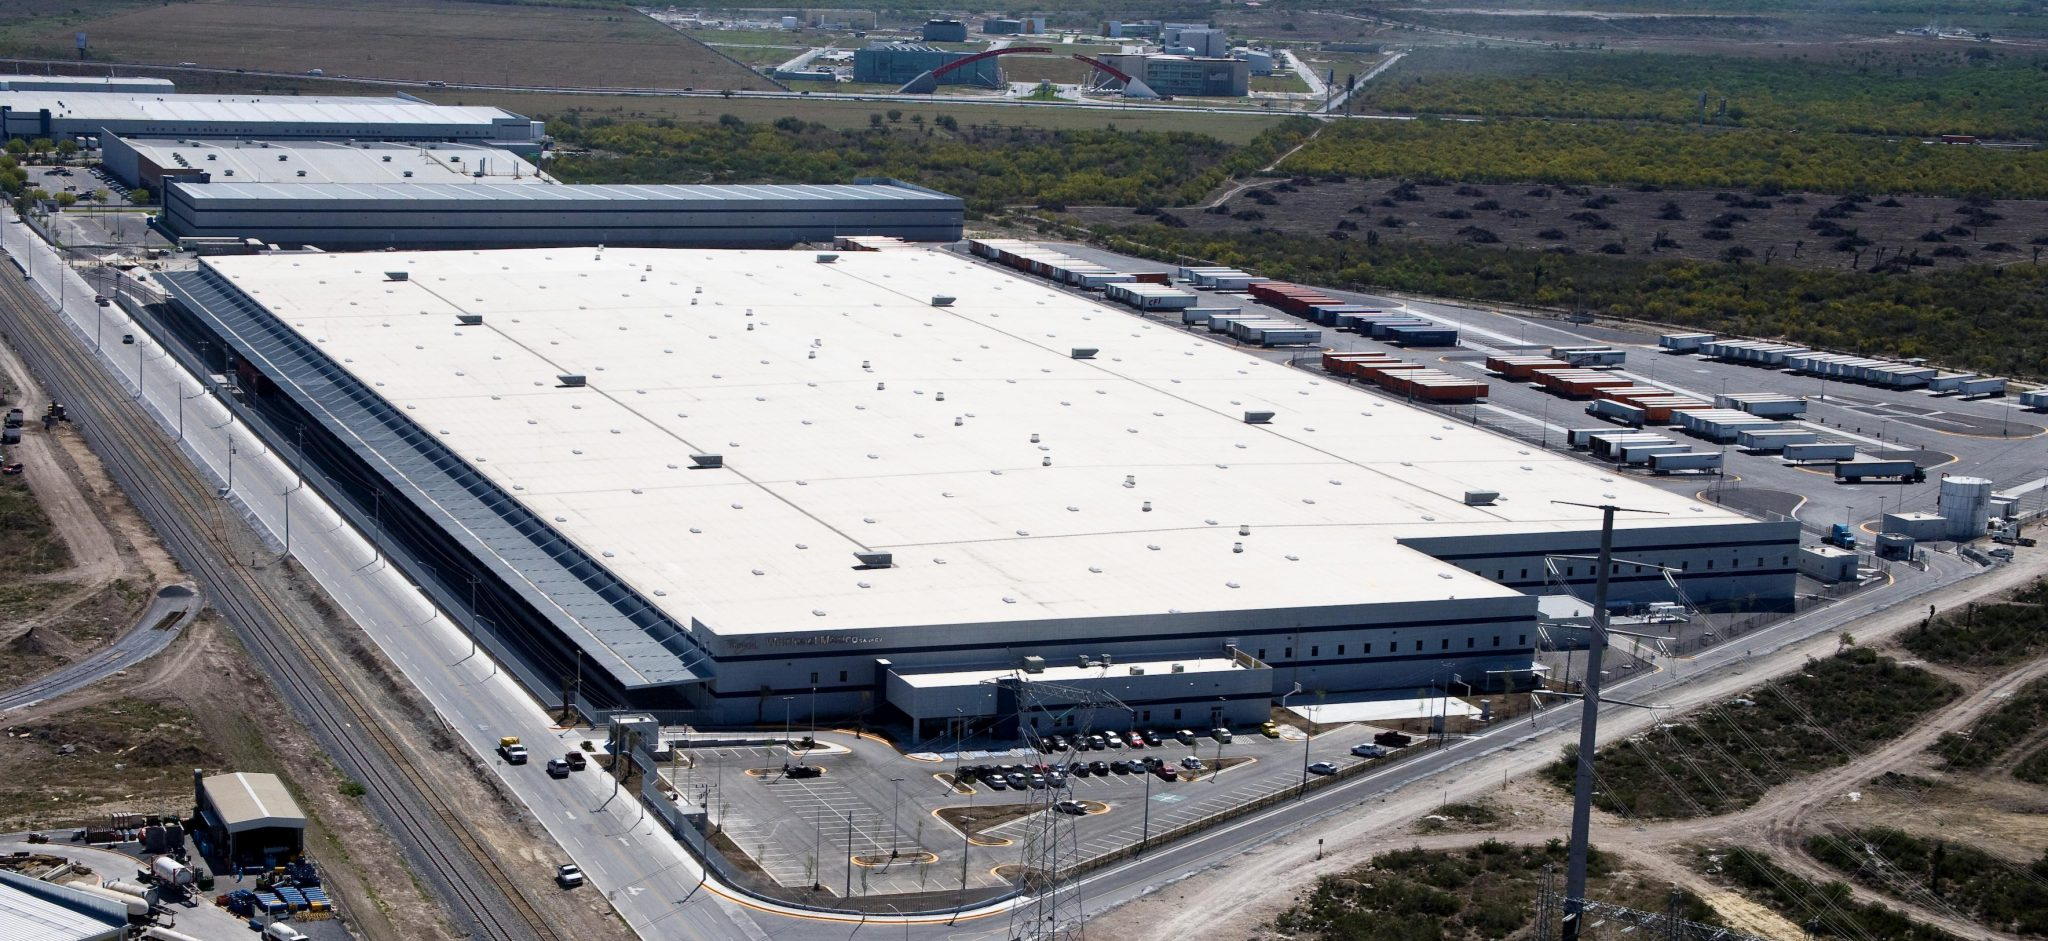 Aerial shot of Whirpool industrial facility in Monterrey, Nuevo Leon